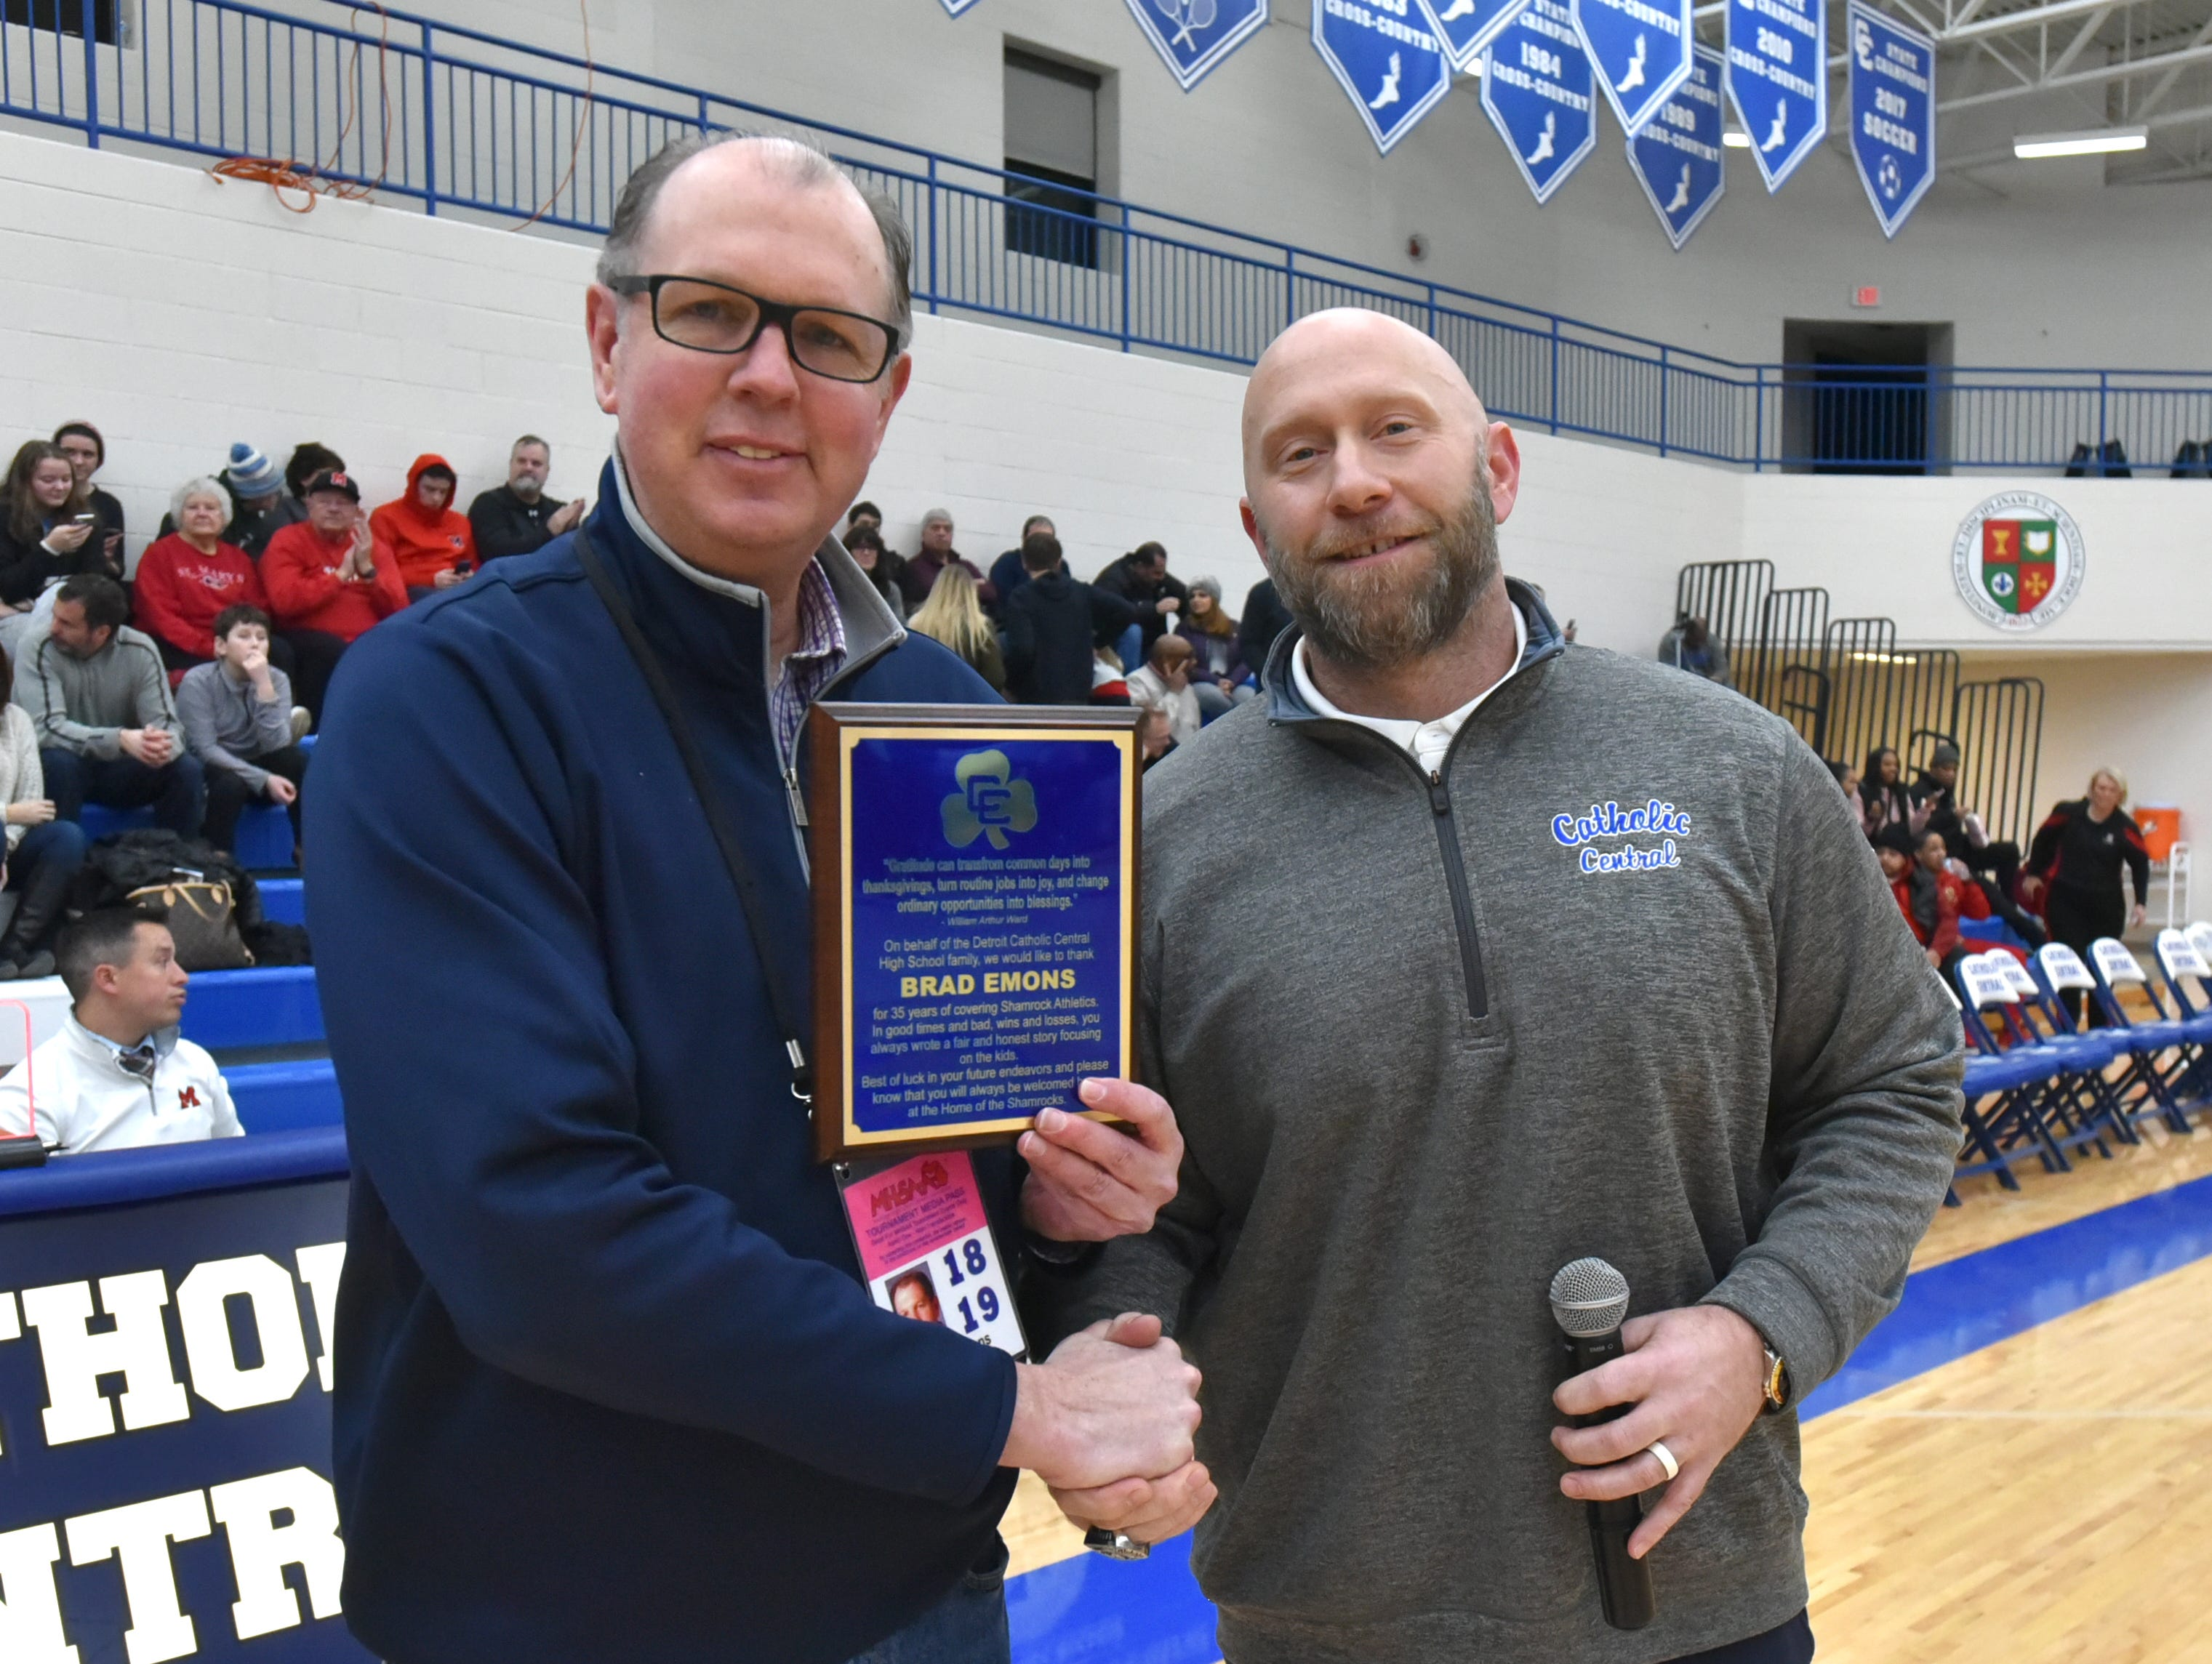 Detroit Catholic Central's Director of Athletics Aaron Babicz, right, honors Hometownlife.com sports reporter Brad Emons during halftime with a plaque commemorating his 35 years covering local high school sports and for his years of providing coverage of the Shamrocks when they were in Redford and Novi. Emons is retiring from the trade at the end of February.